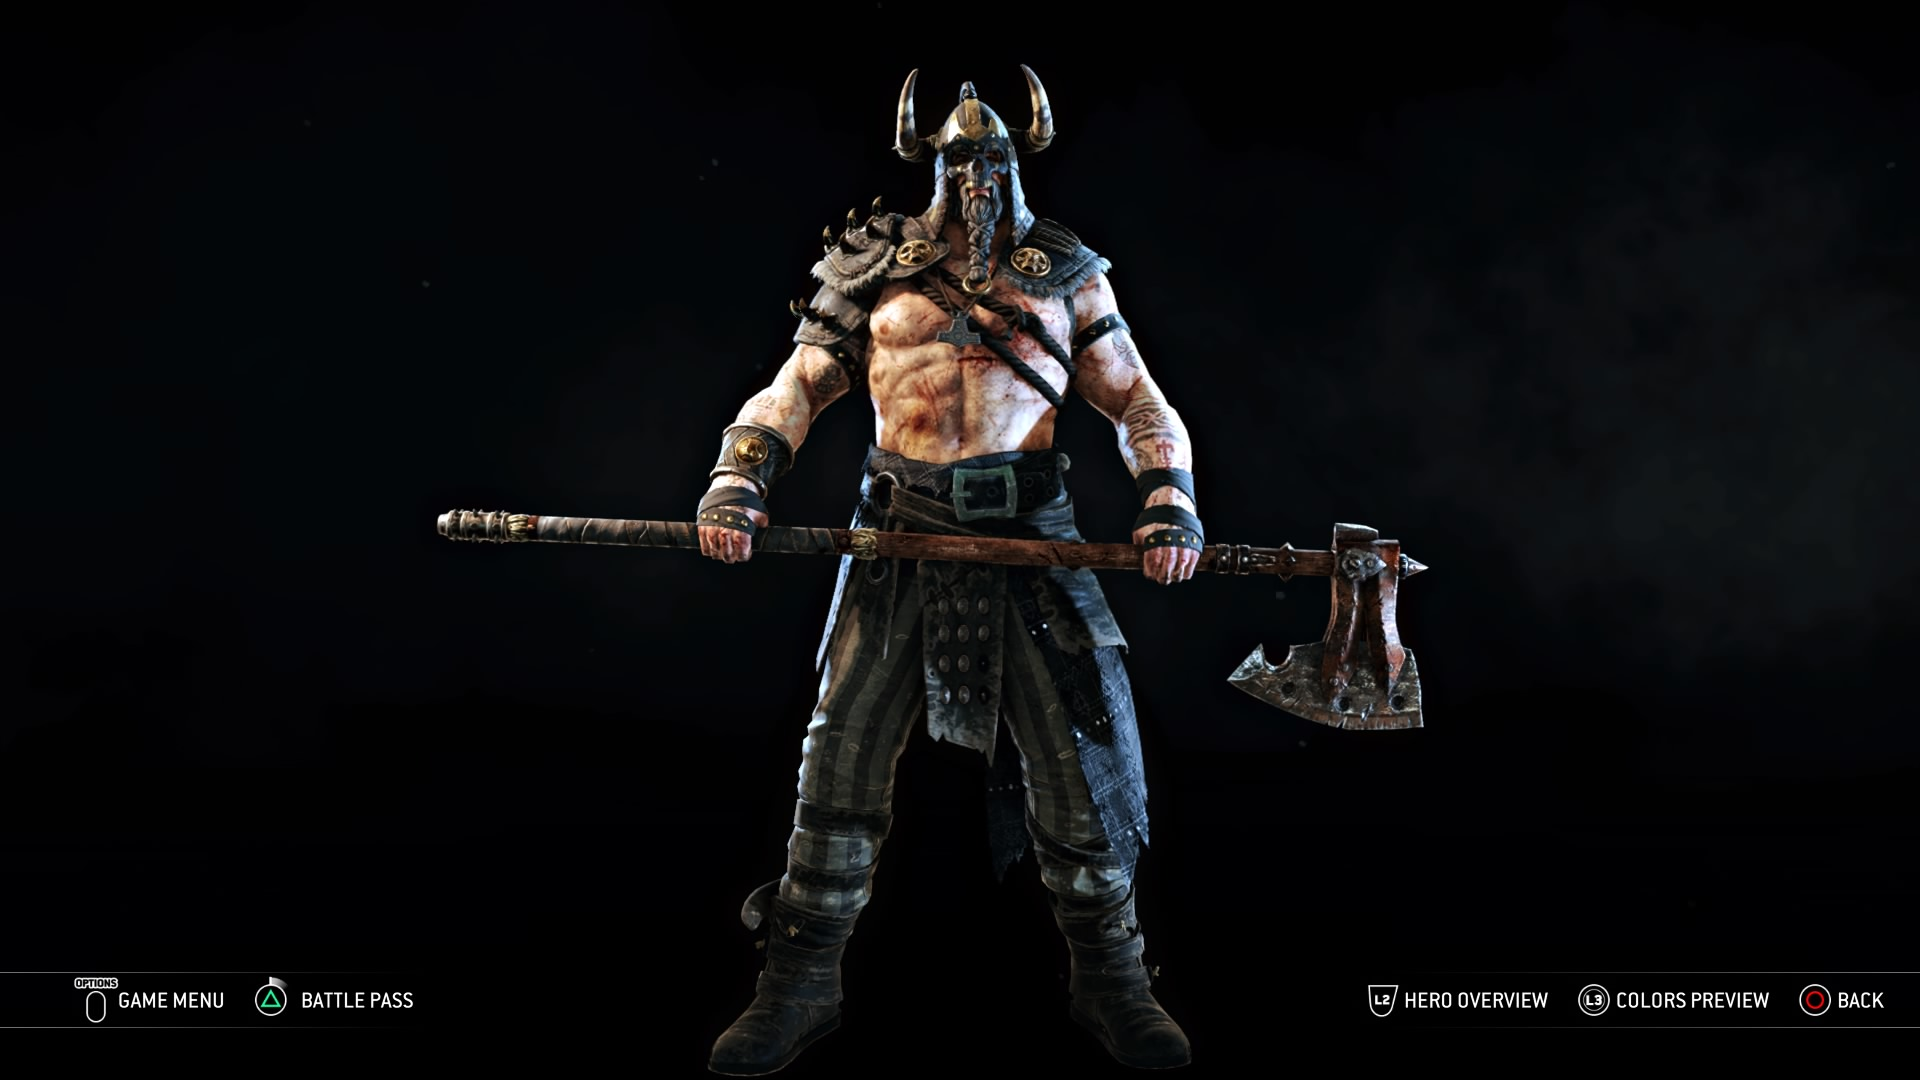 I missed the posts Vikings posted and don't feel like scrolling.